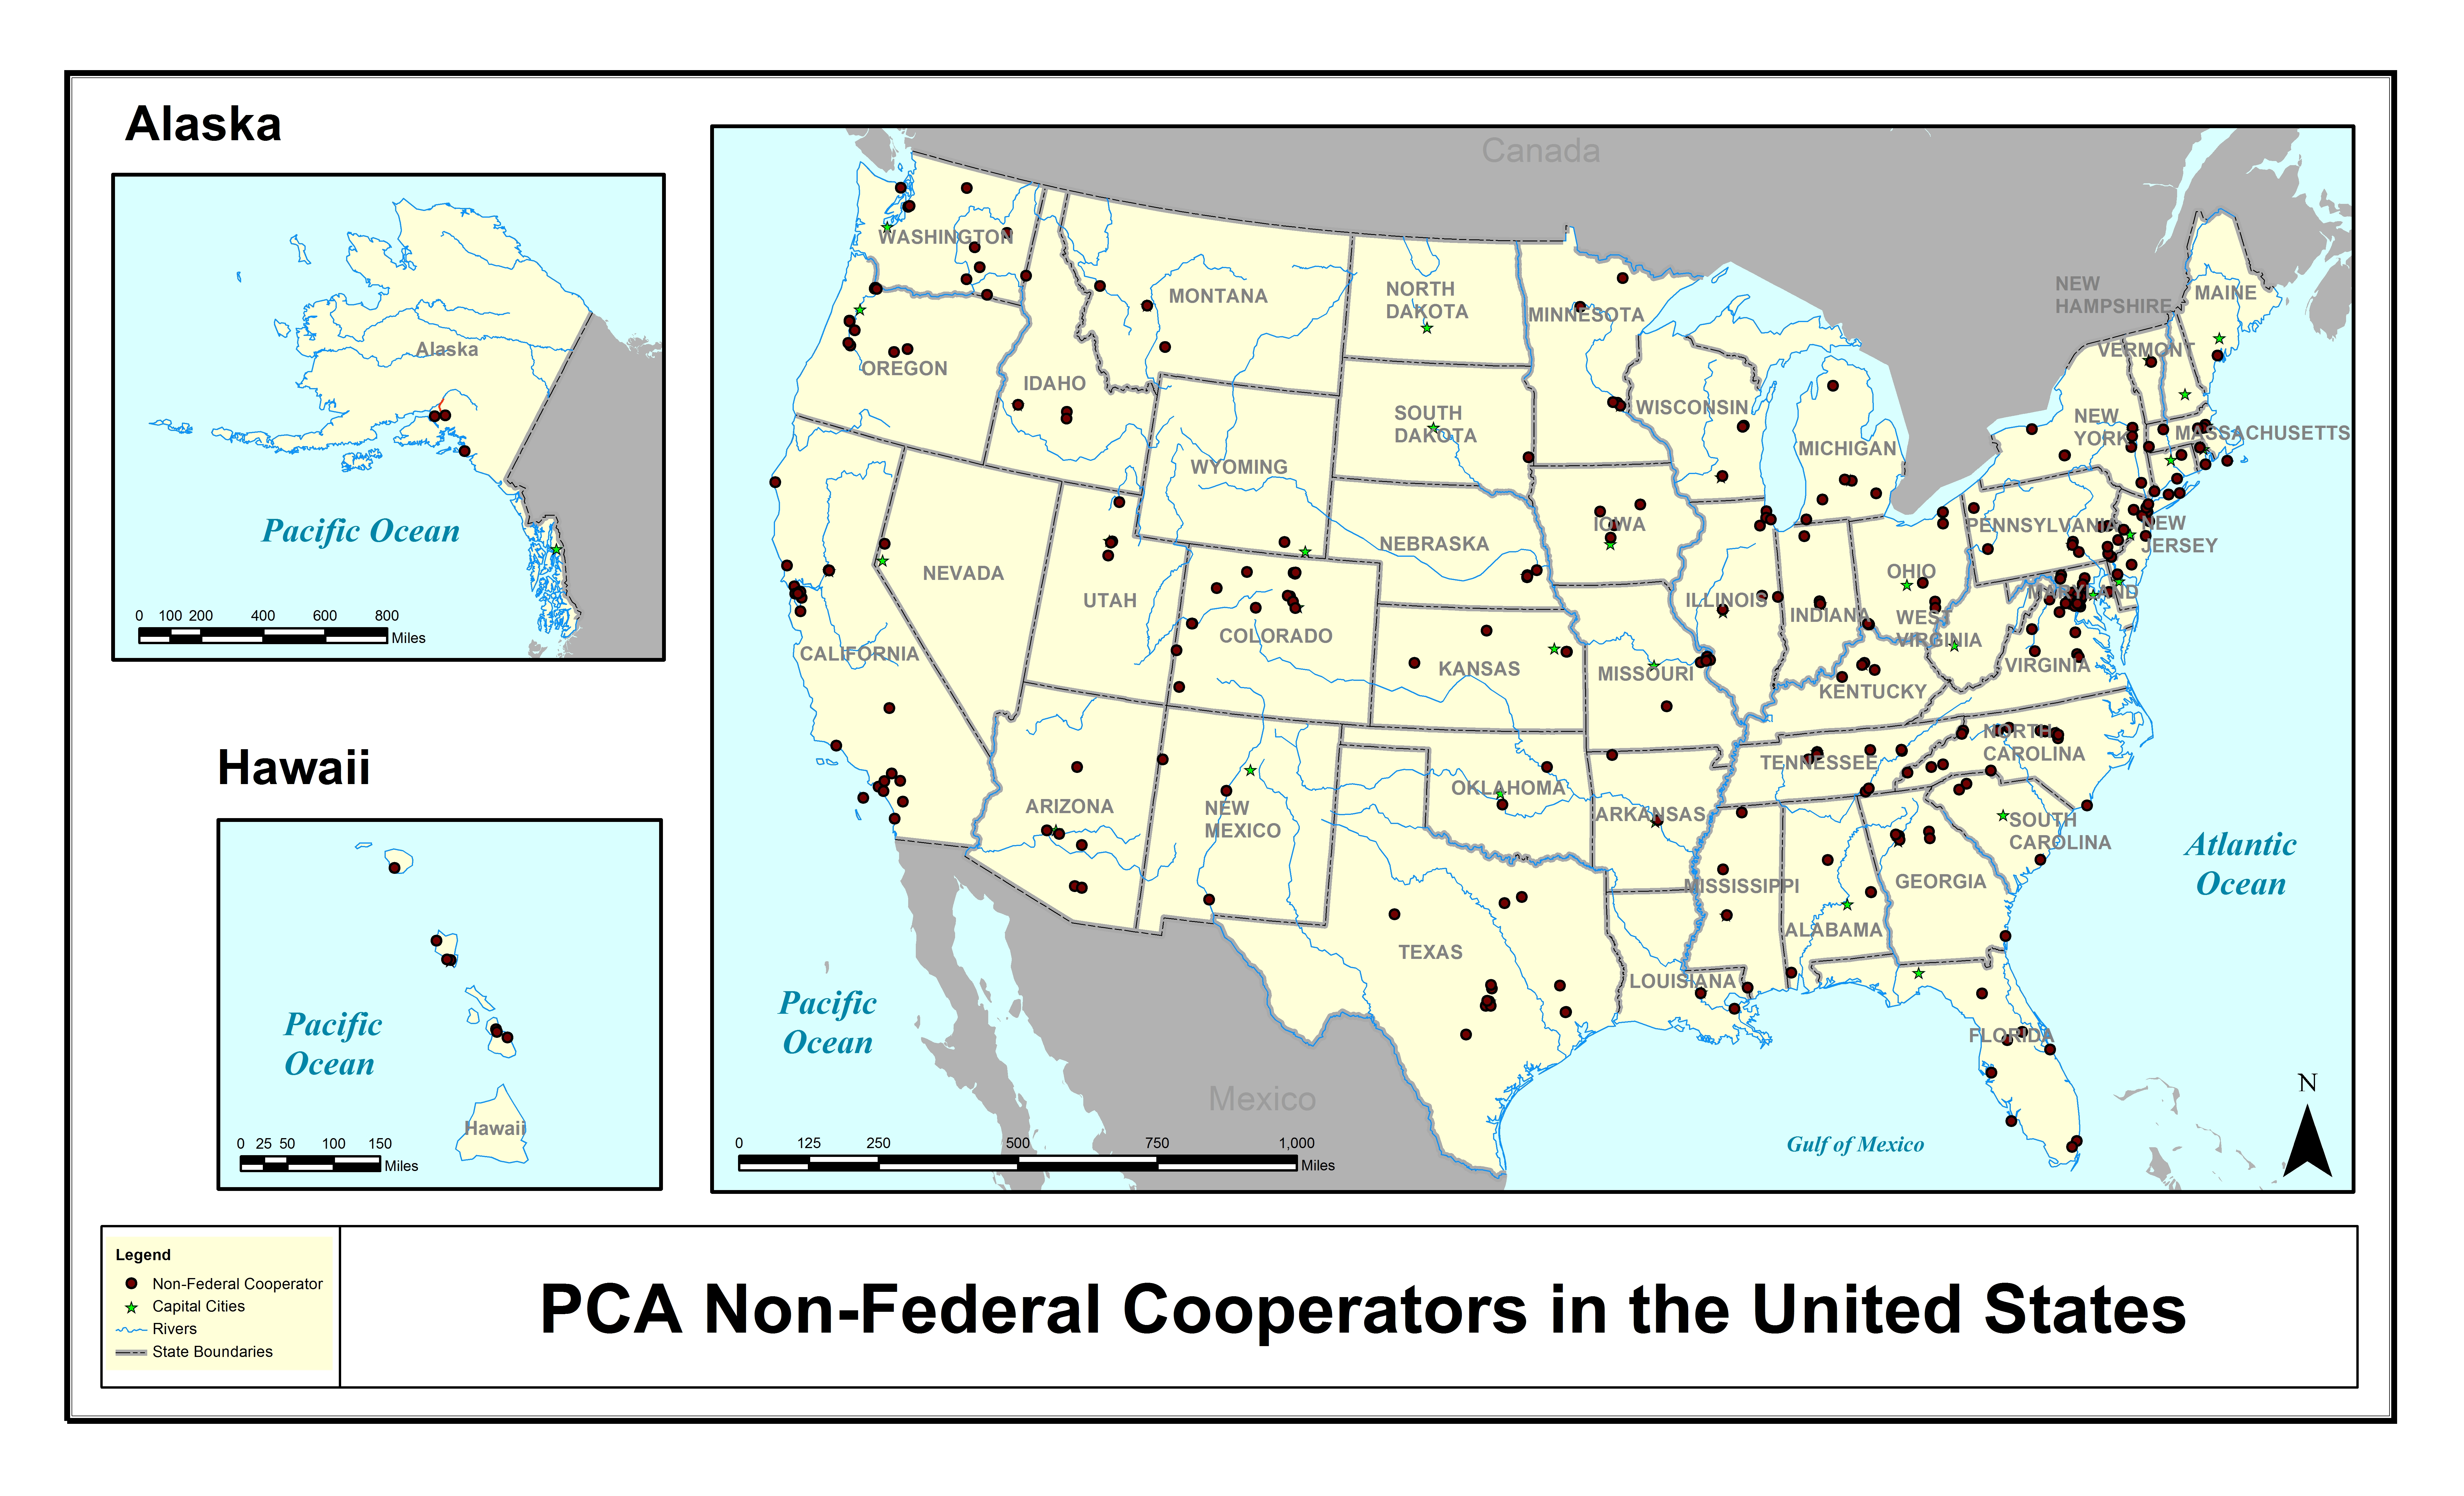 map of the united states with pca 356 non federal cooperators as points on the